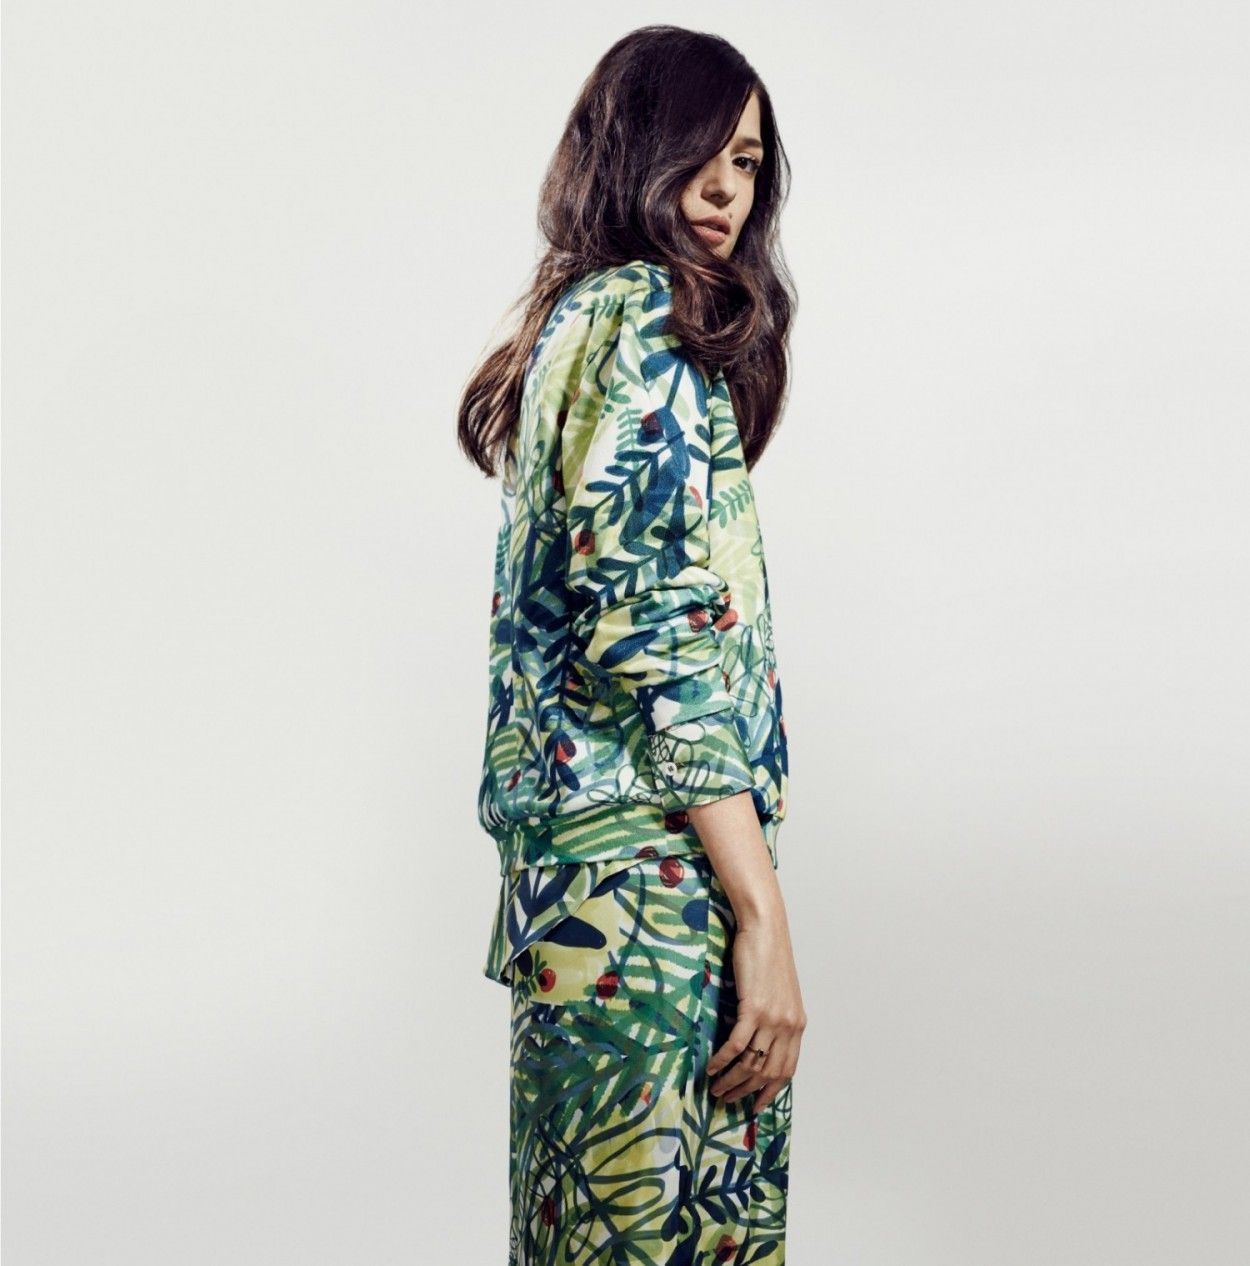 EleonoraCarisi_for_Zalando_Lookbook(11)©AxlJansen.jpg